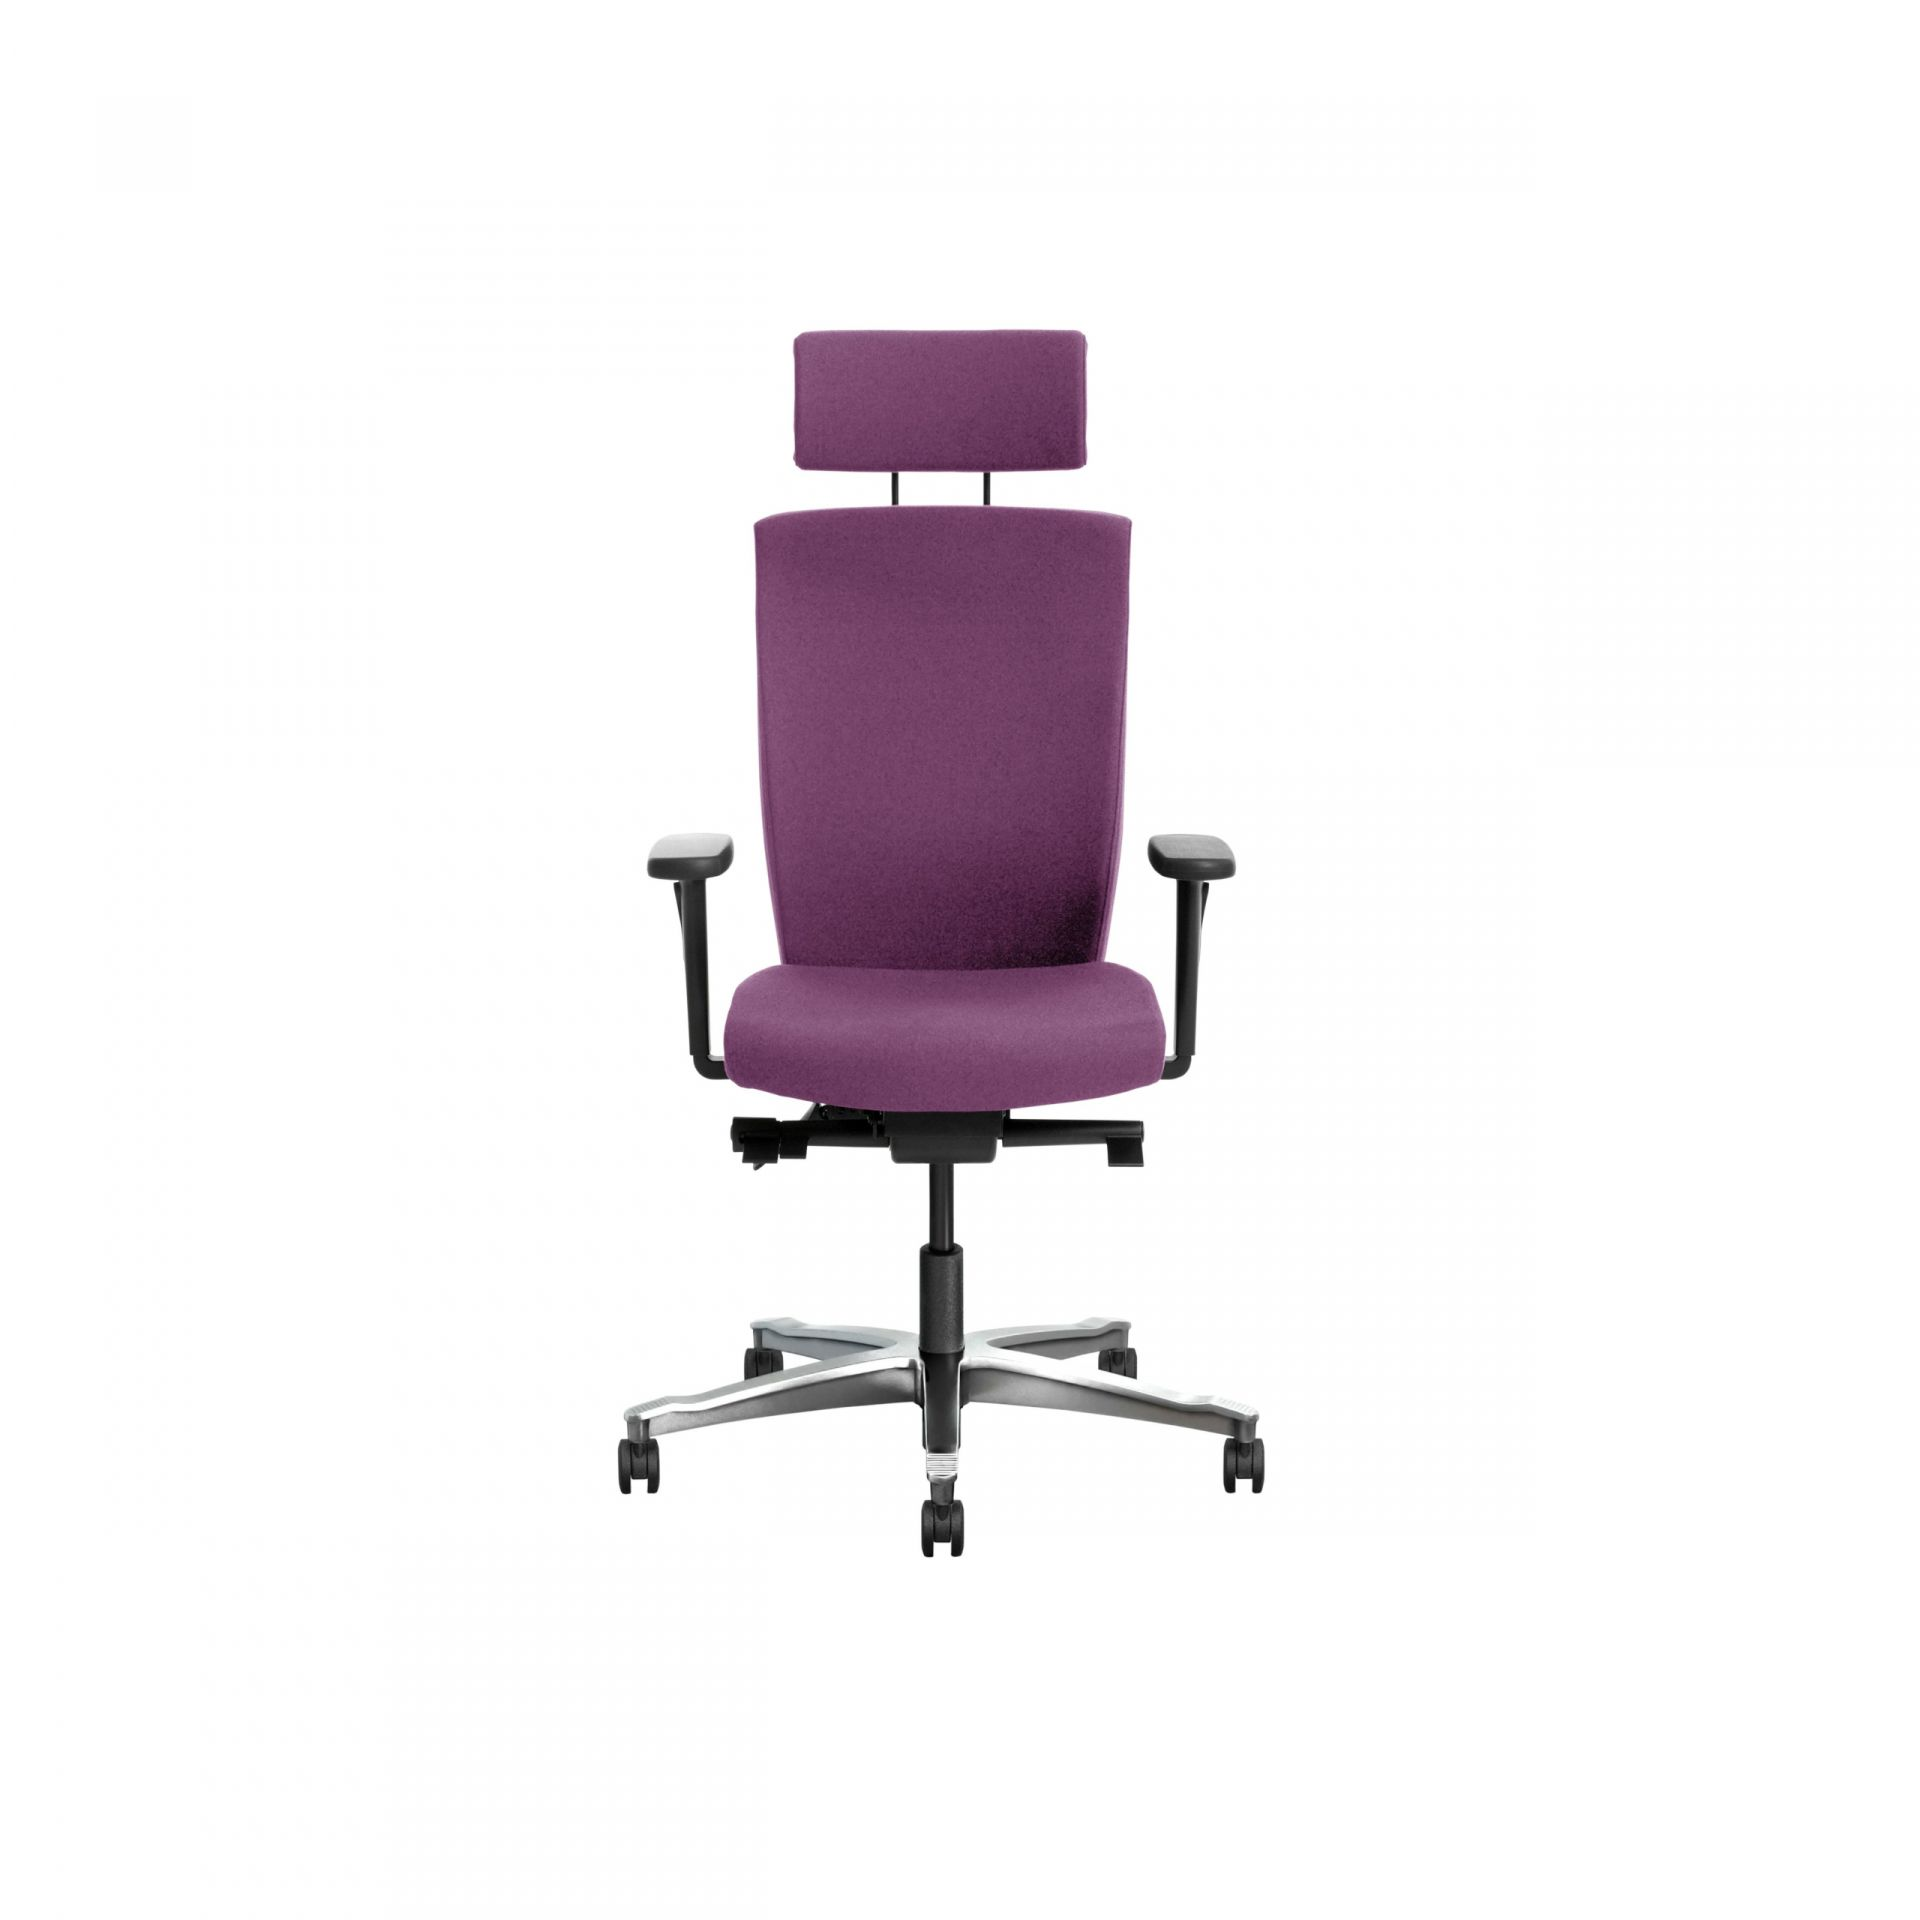 Splice Office chair with upholstered back product image 3